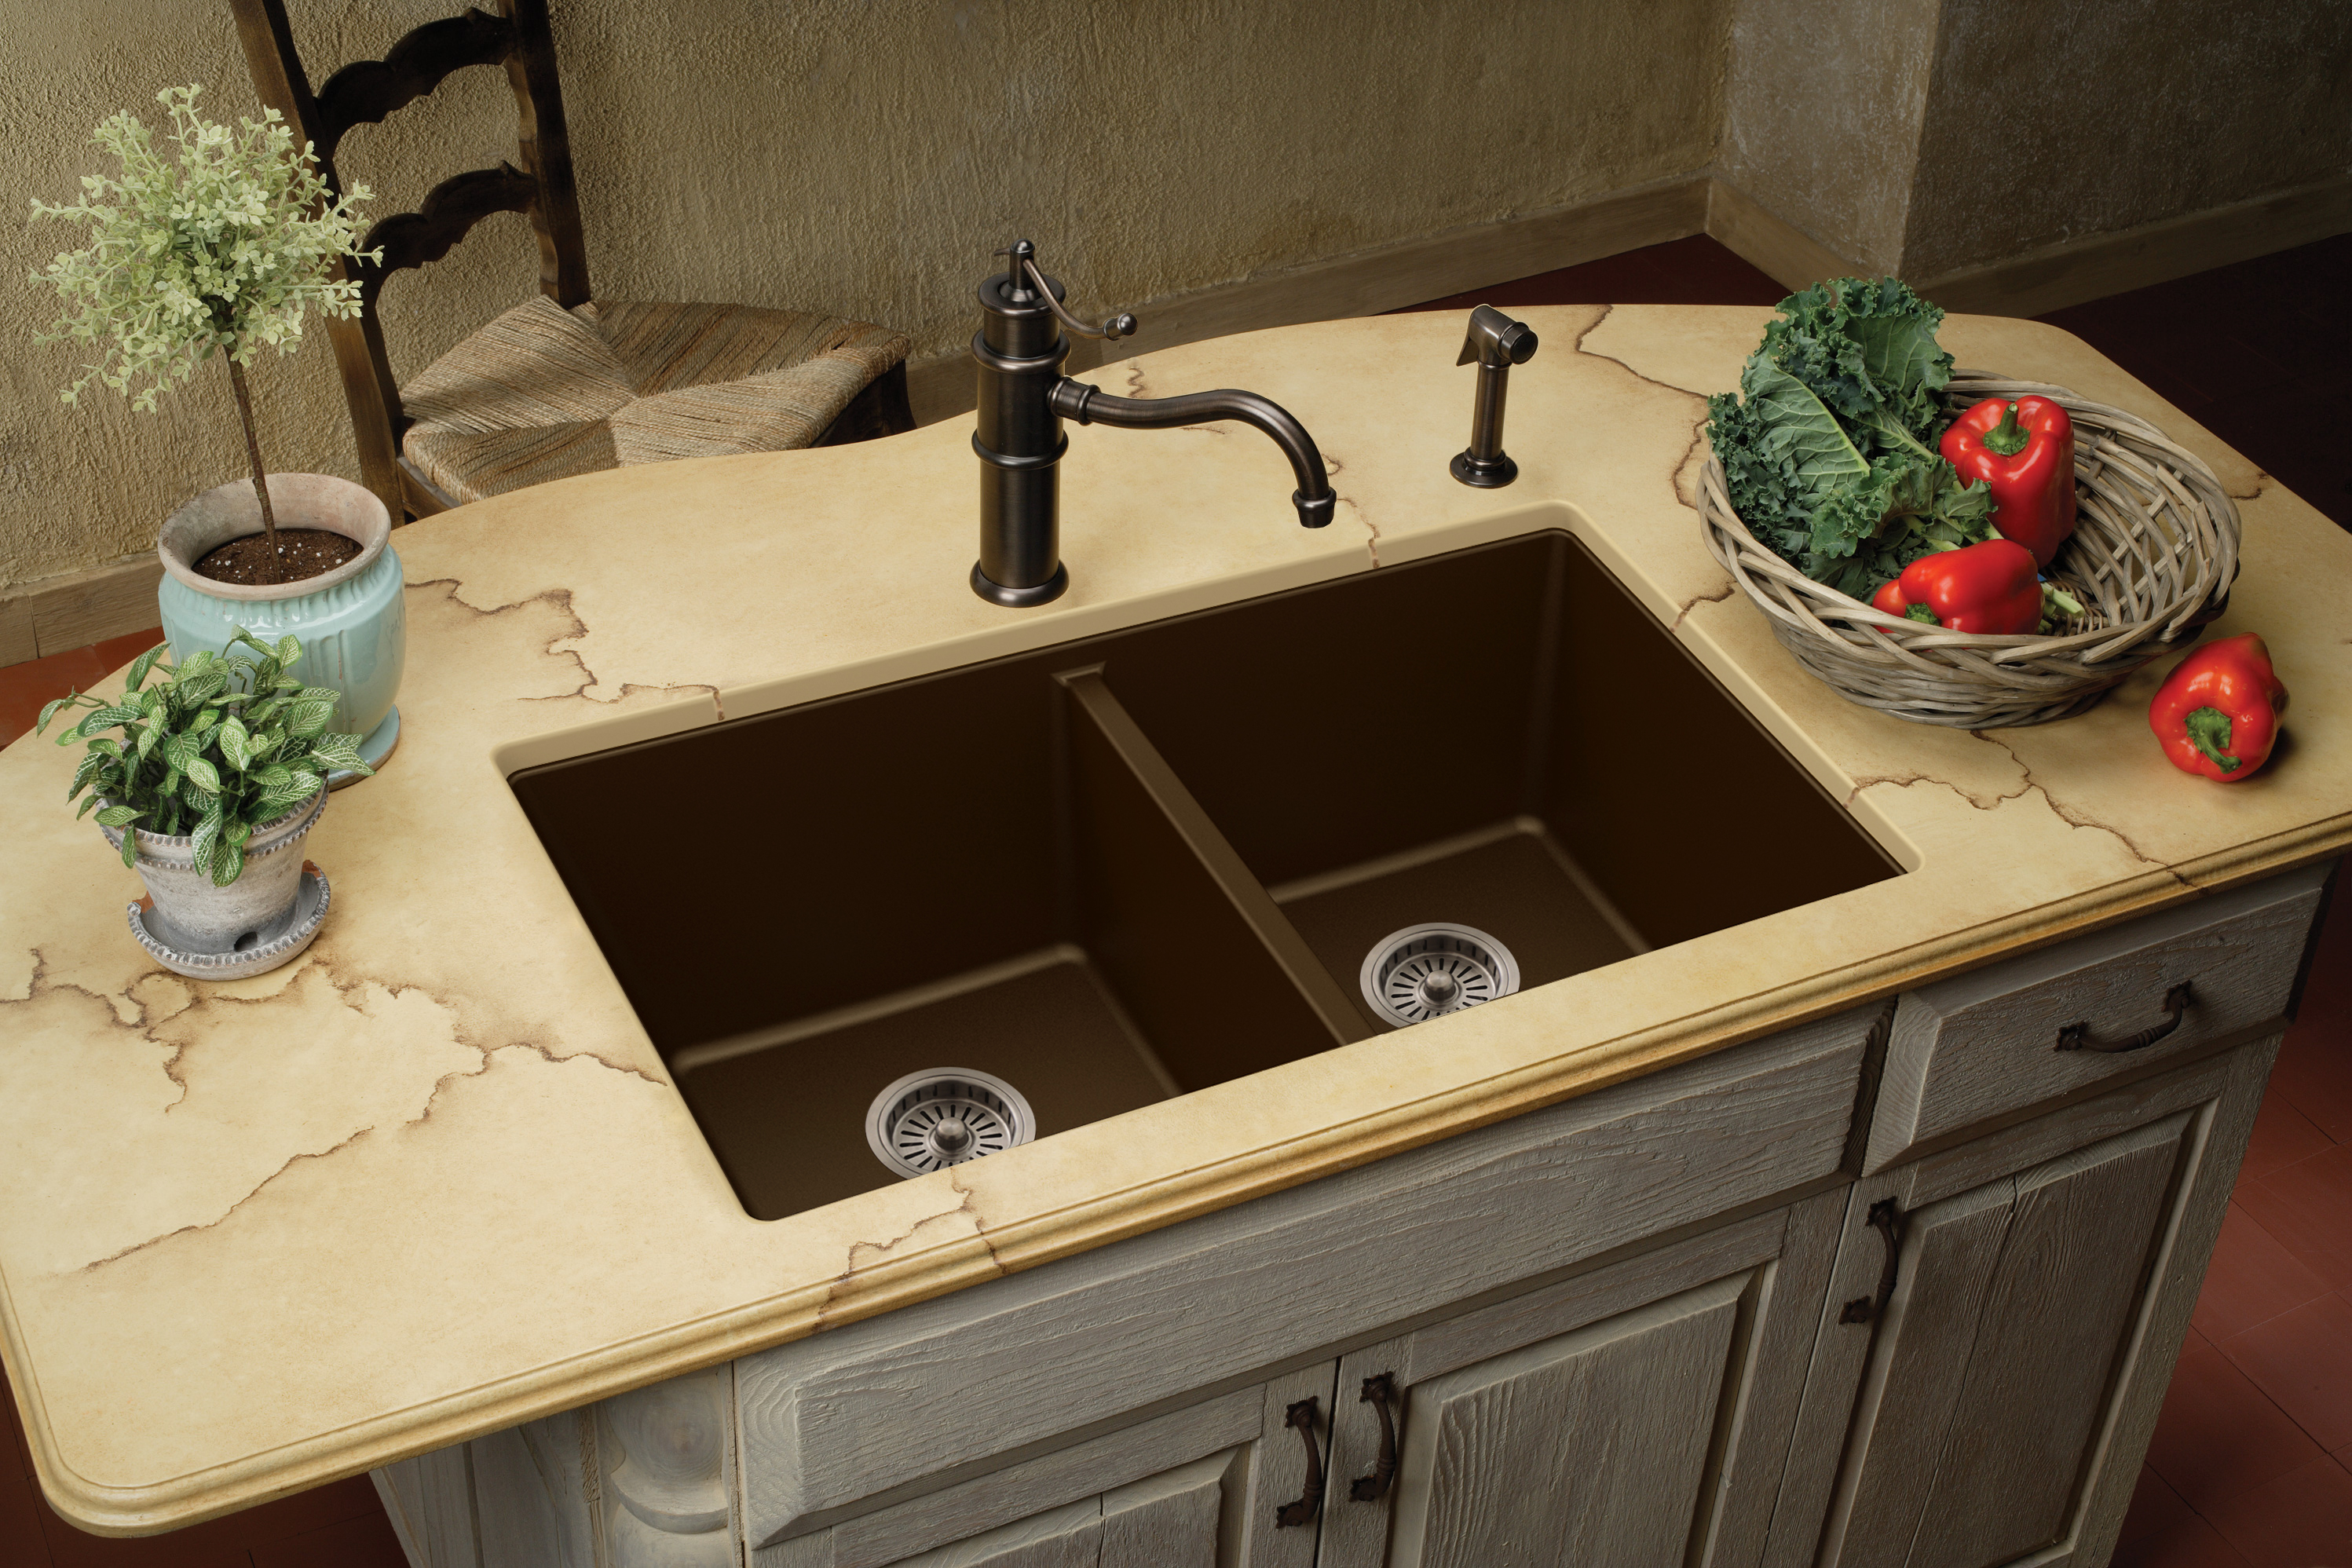 The Best Material For Kitchen Sinks